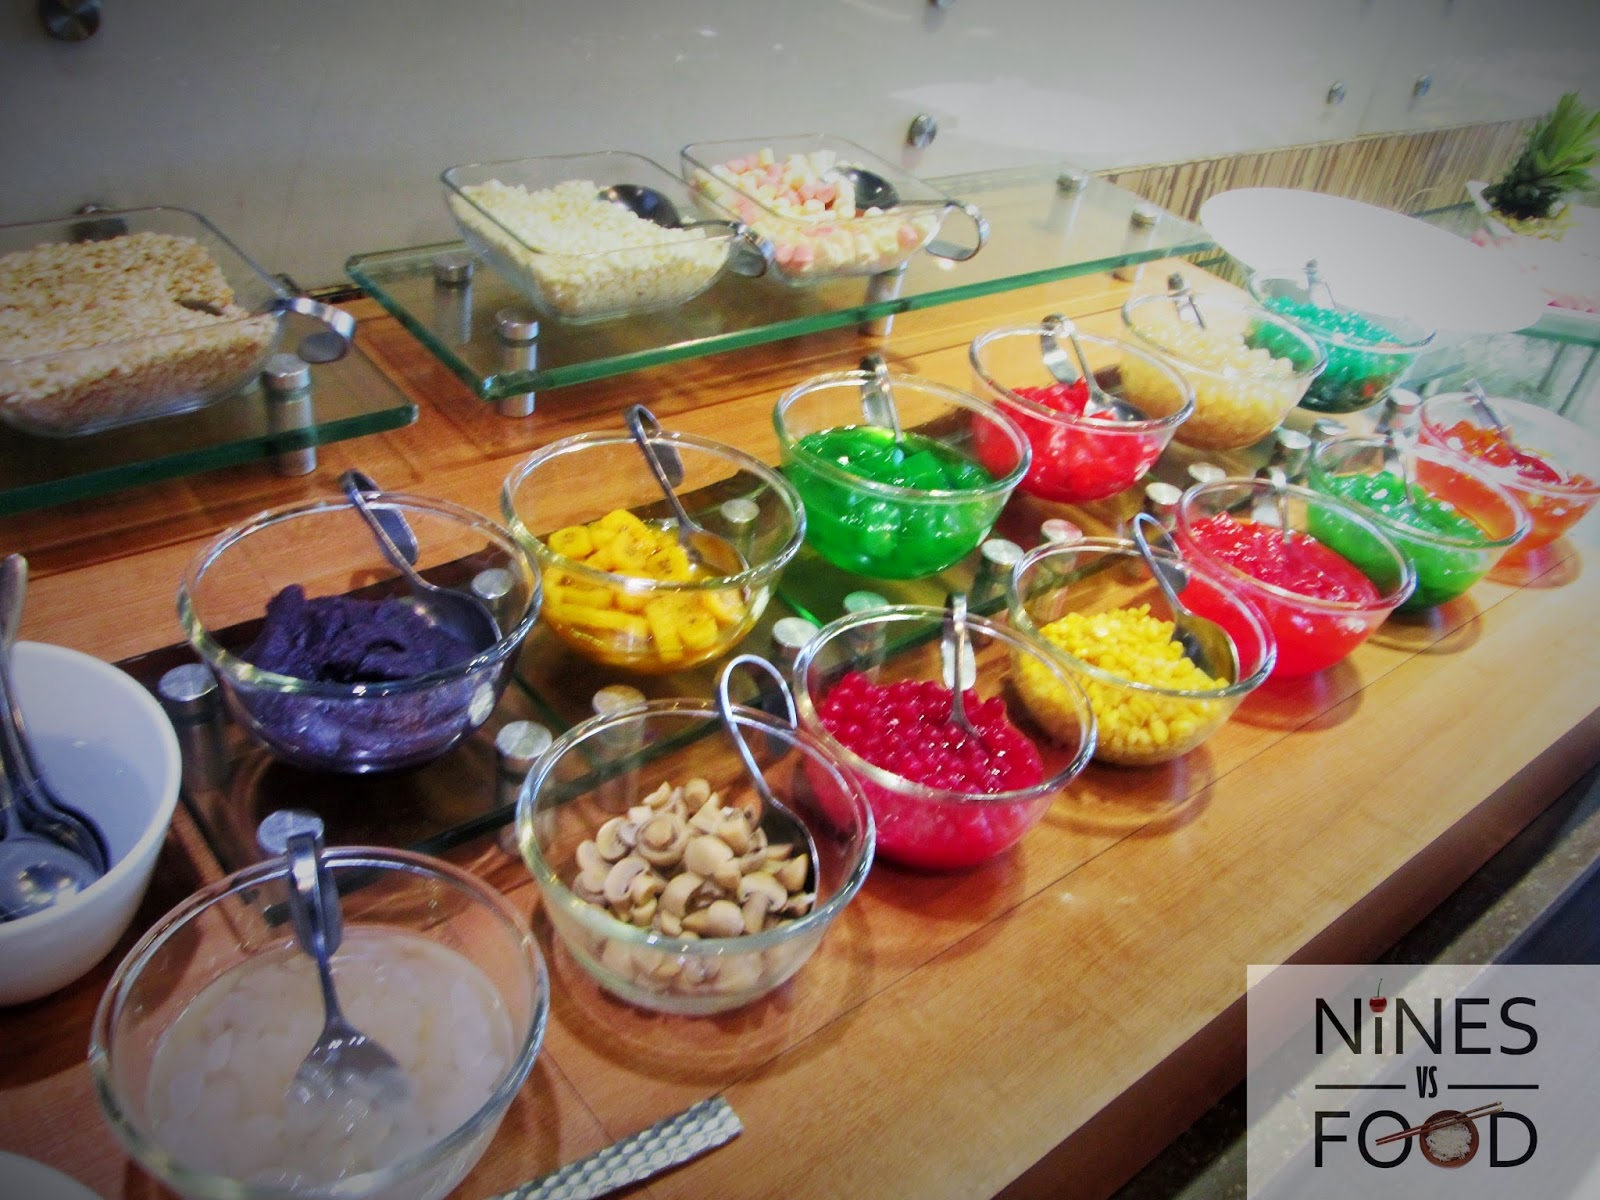 Nines vs. Food - The Buffet at Commonwealth-39.jpg